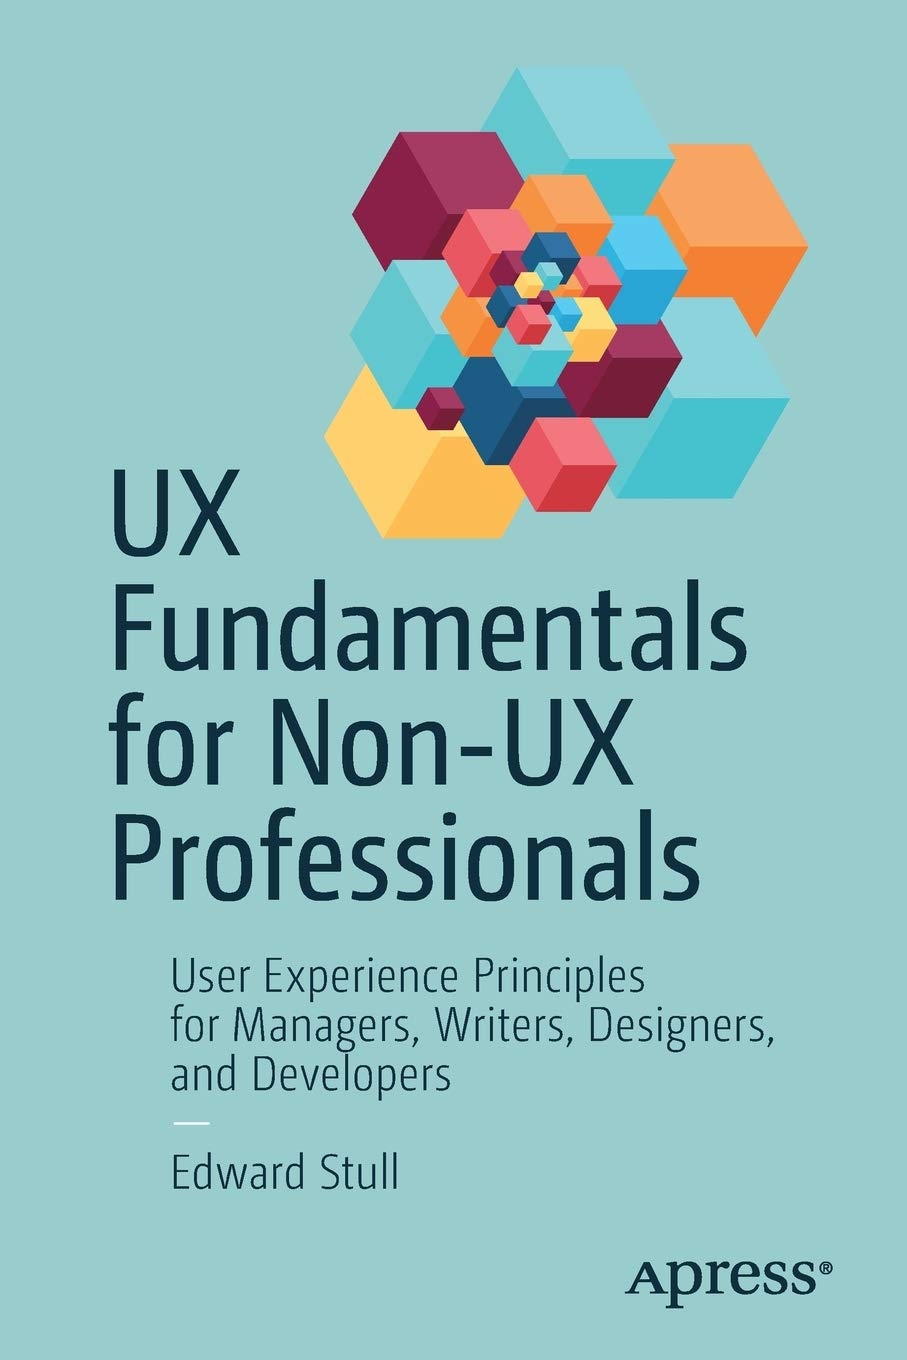 Download UX Fundamentals for Non-UX Professionals: User Experience Principles for Managers, Writers, Designers, and Developers ebook